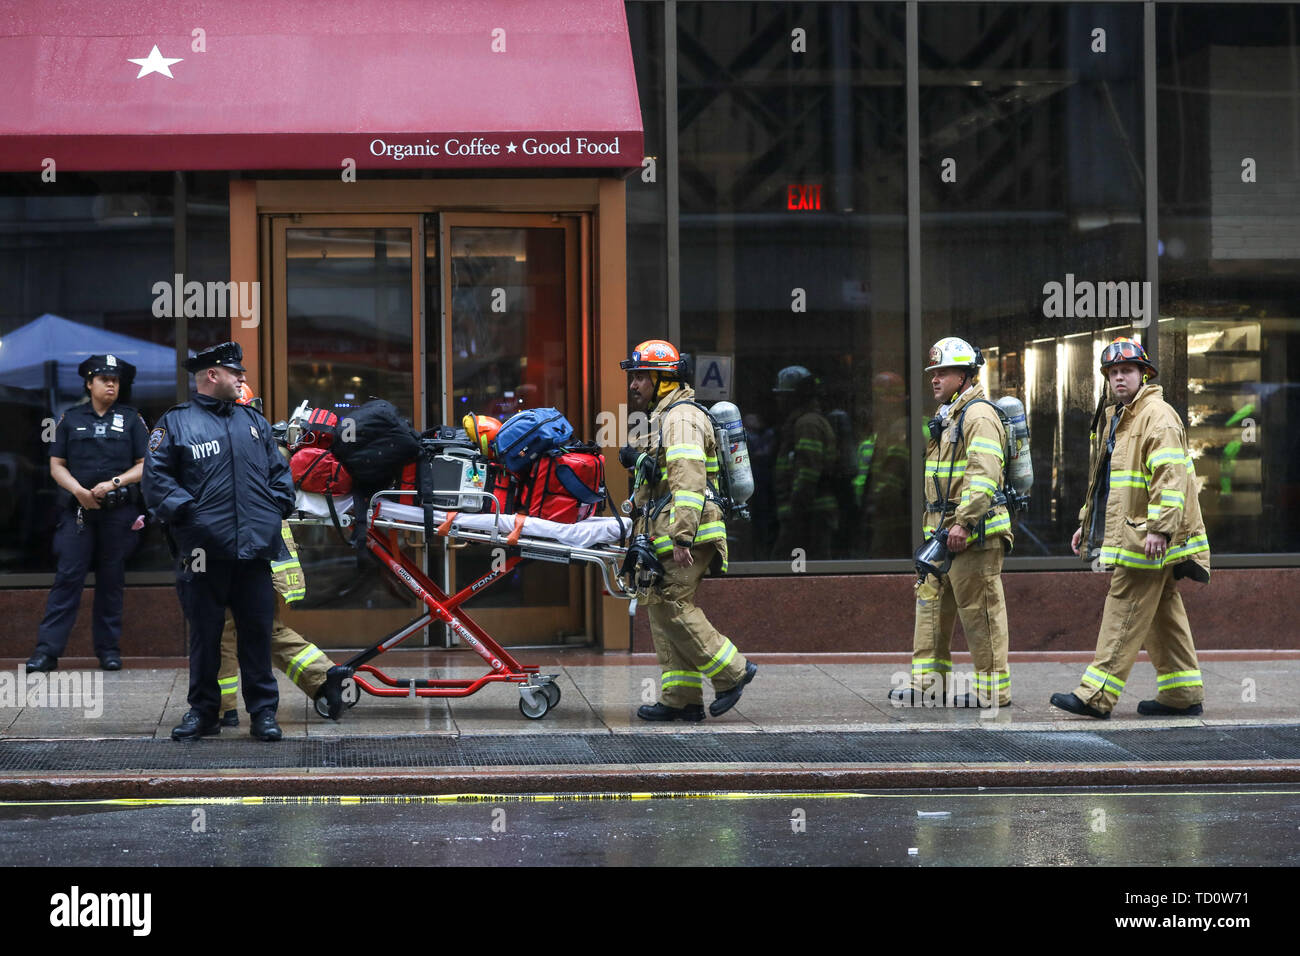 New York, United States. 10th June, 2019. A helicopter made an emergency landing and caught fire on Monday afternoon (10) on a building on 7th Avenue in Manhattan. One person died, New York authorities assumed the victim was the pilot of the aircraft, which did not carry passengers. No one in the building or on the ground was injured. (PHOTO: WILLIAM VOLCOV/BRAZIL PHOTO PRESS) Credit: Brazil Photo Press/Alamy Live News - Stock Image